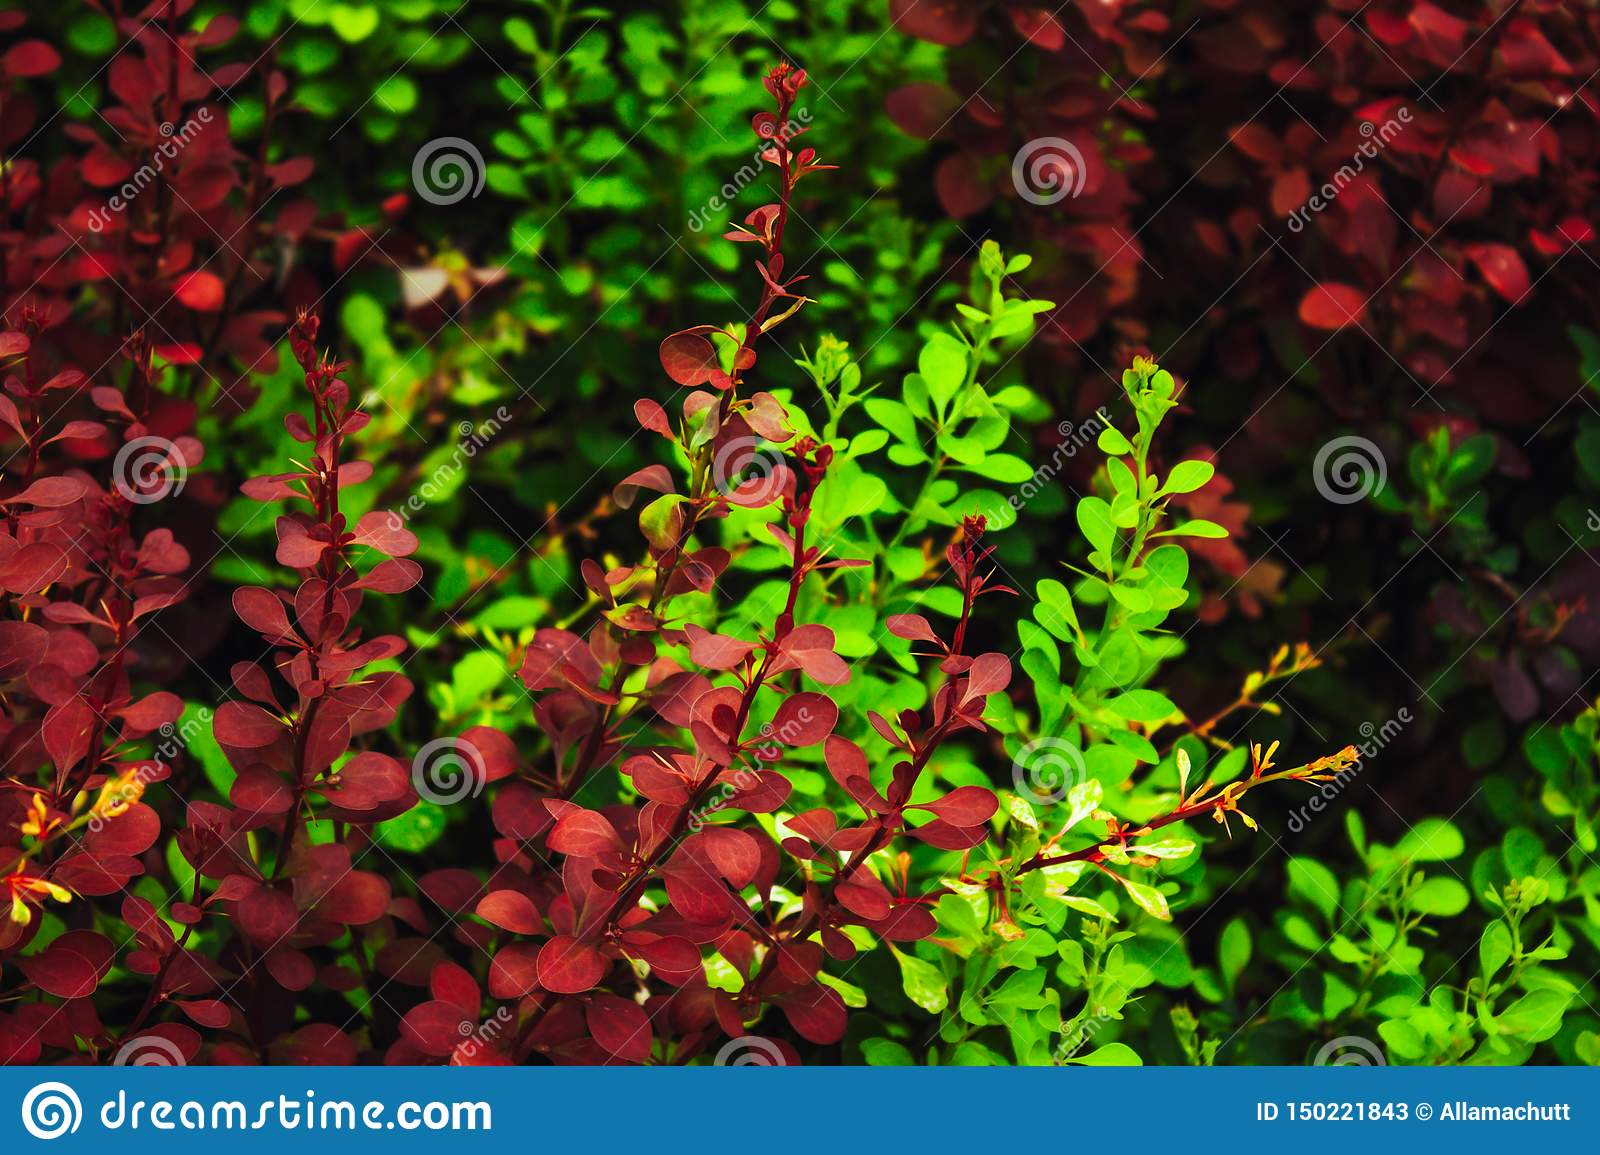 Green and red foliage